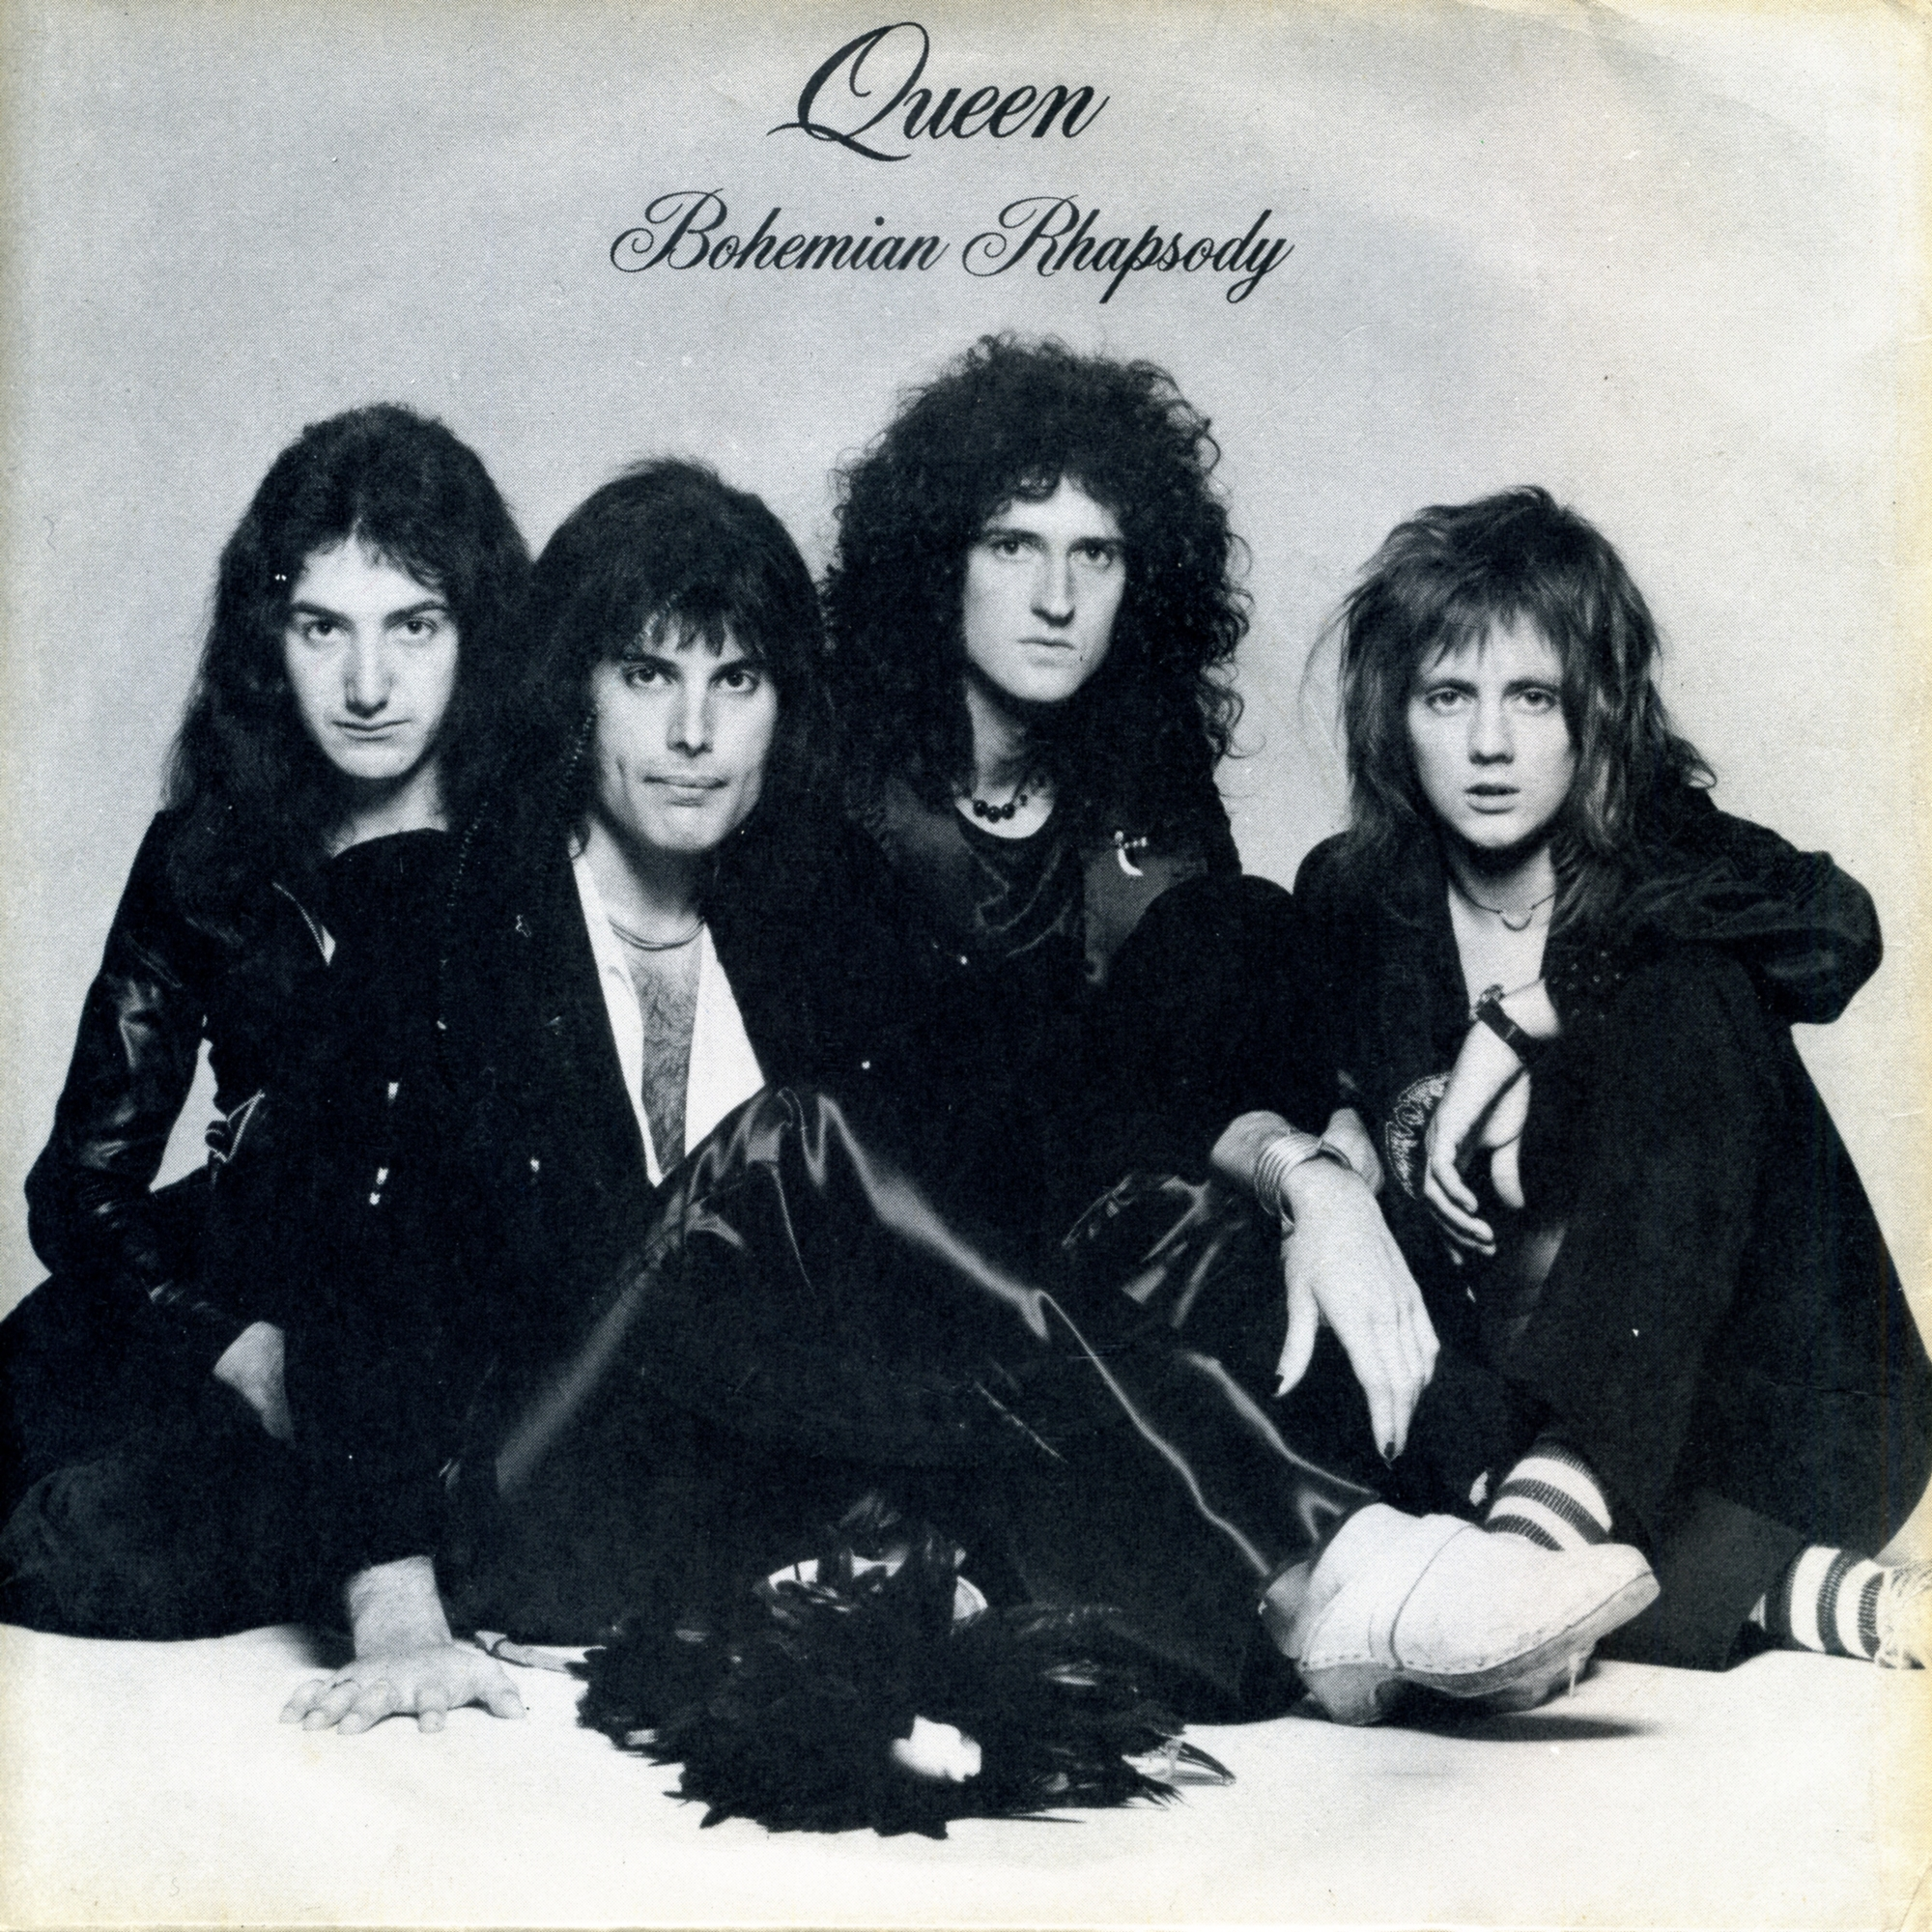 Queen Bohemian Rhapsody: A Night At The Opera (1975)